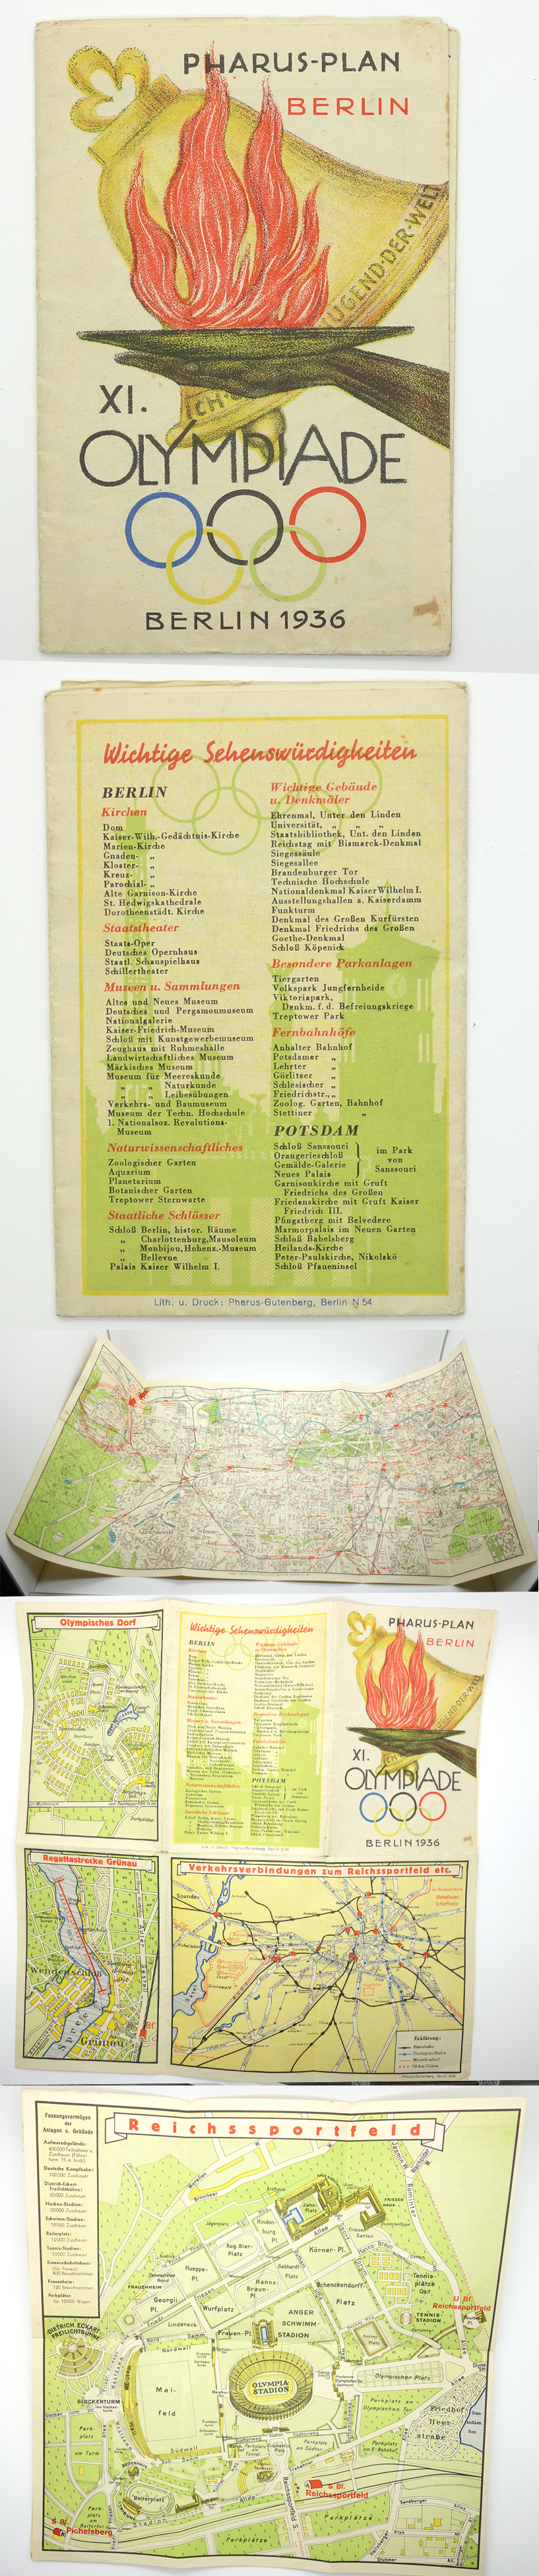 1936 Berlin Olympic Guide Map of Venues etc